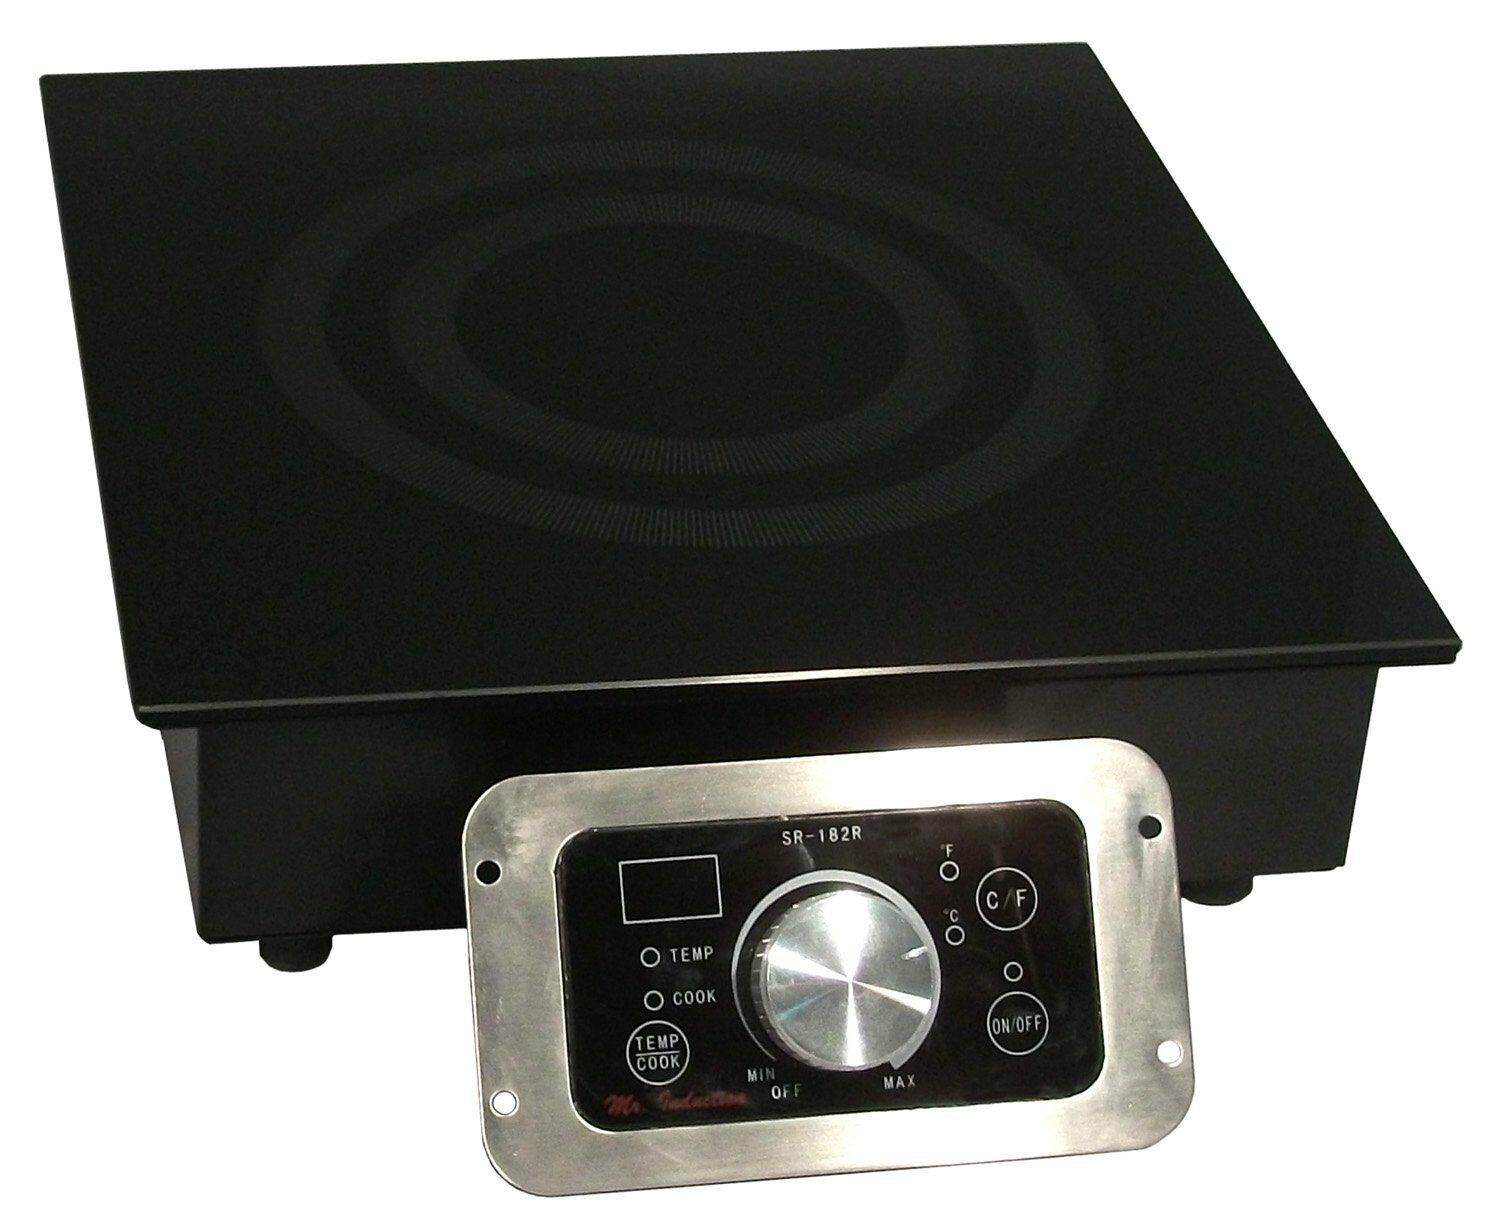 3400 Watt Commercial Built-in Induction Cooktop Range Restaurant Cook Top 240v